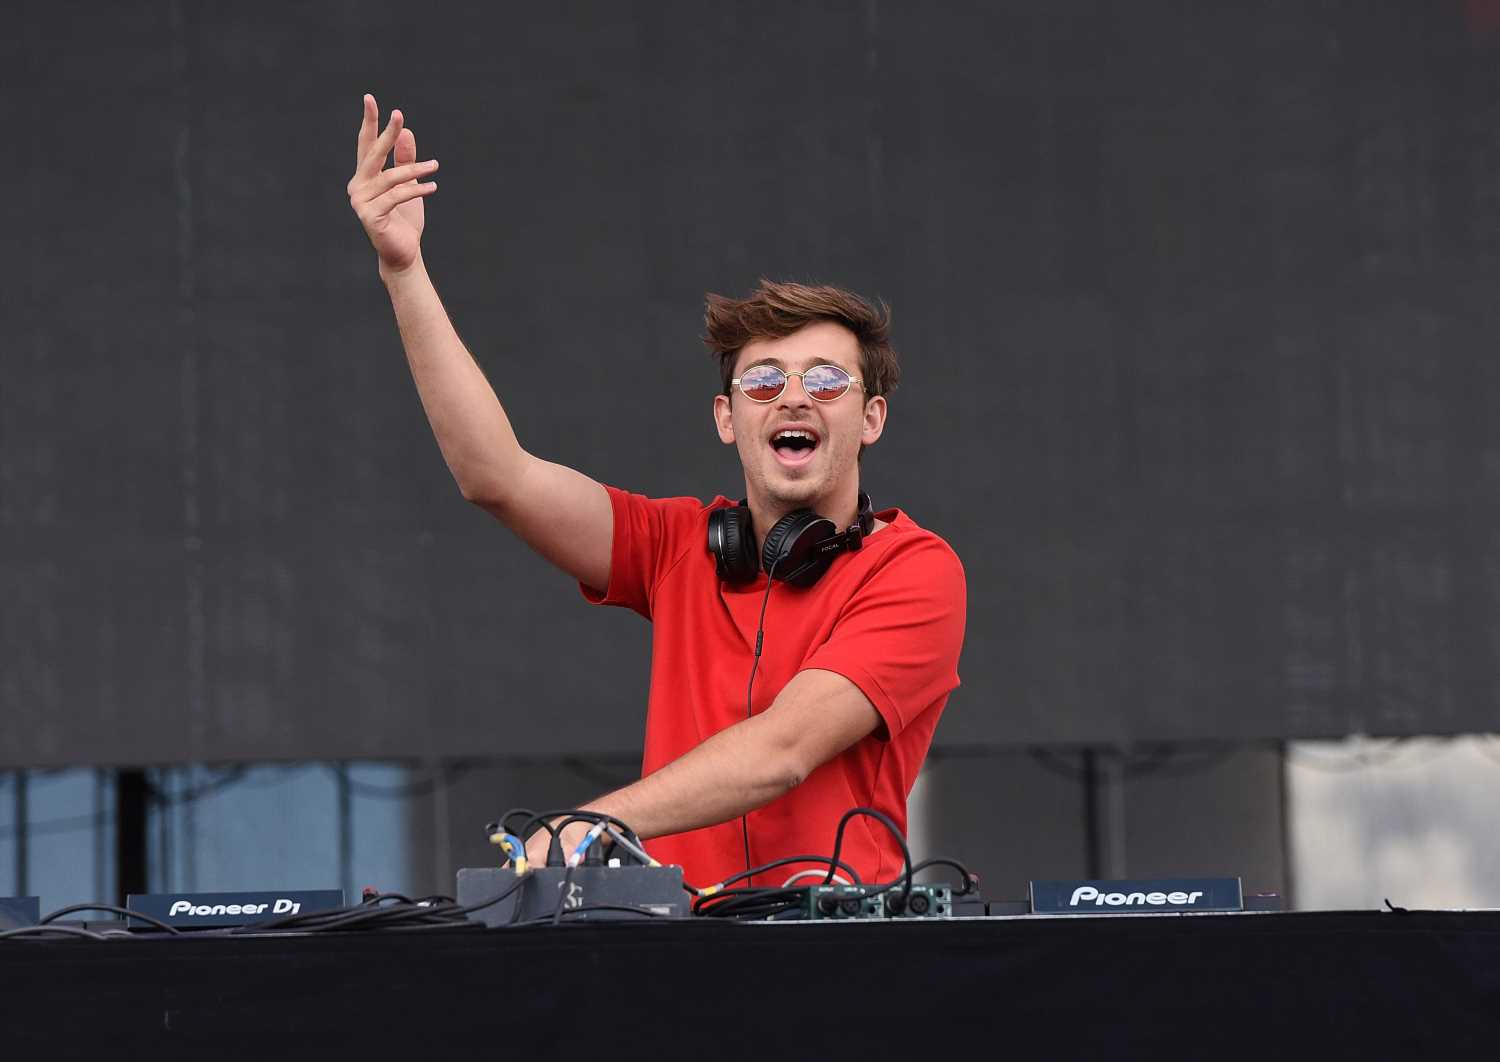 Who is Flume? Aussie DJ and producer who performed x-rated sex act on stage at Burning Man festival